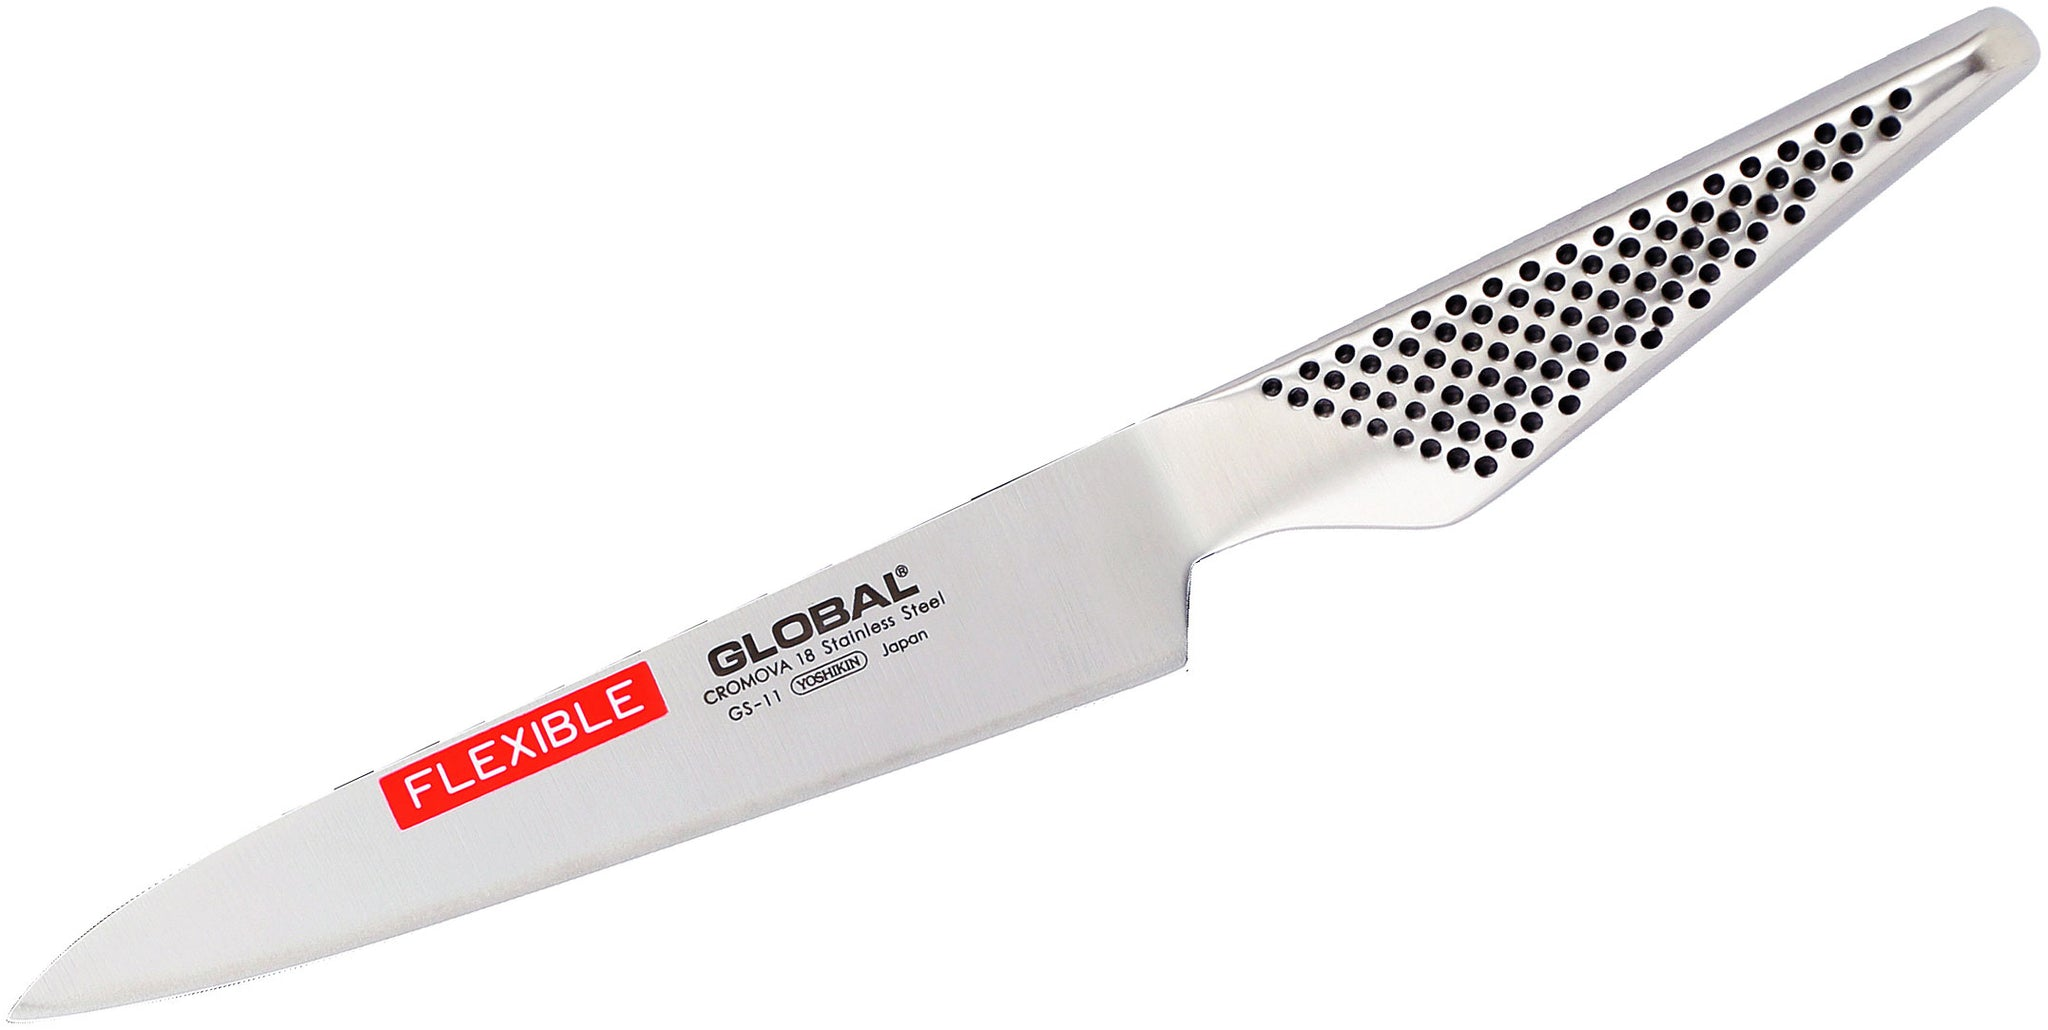 GS Series Utility Knife